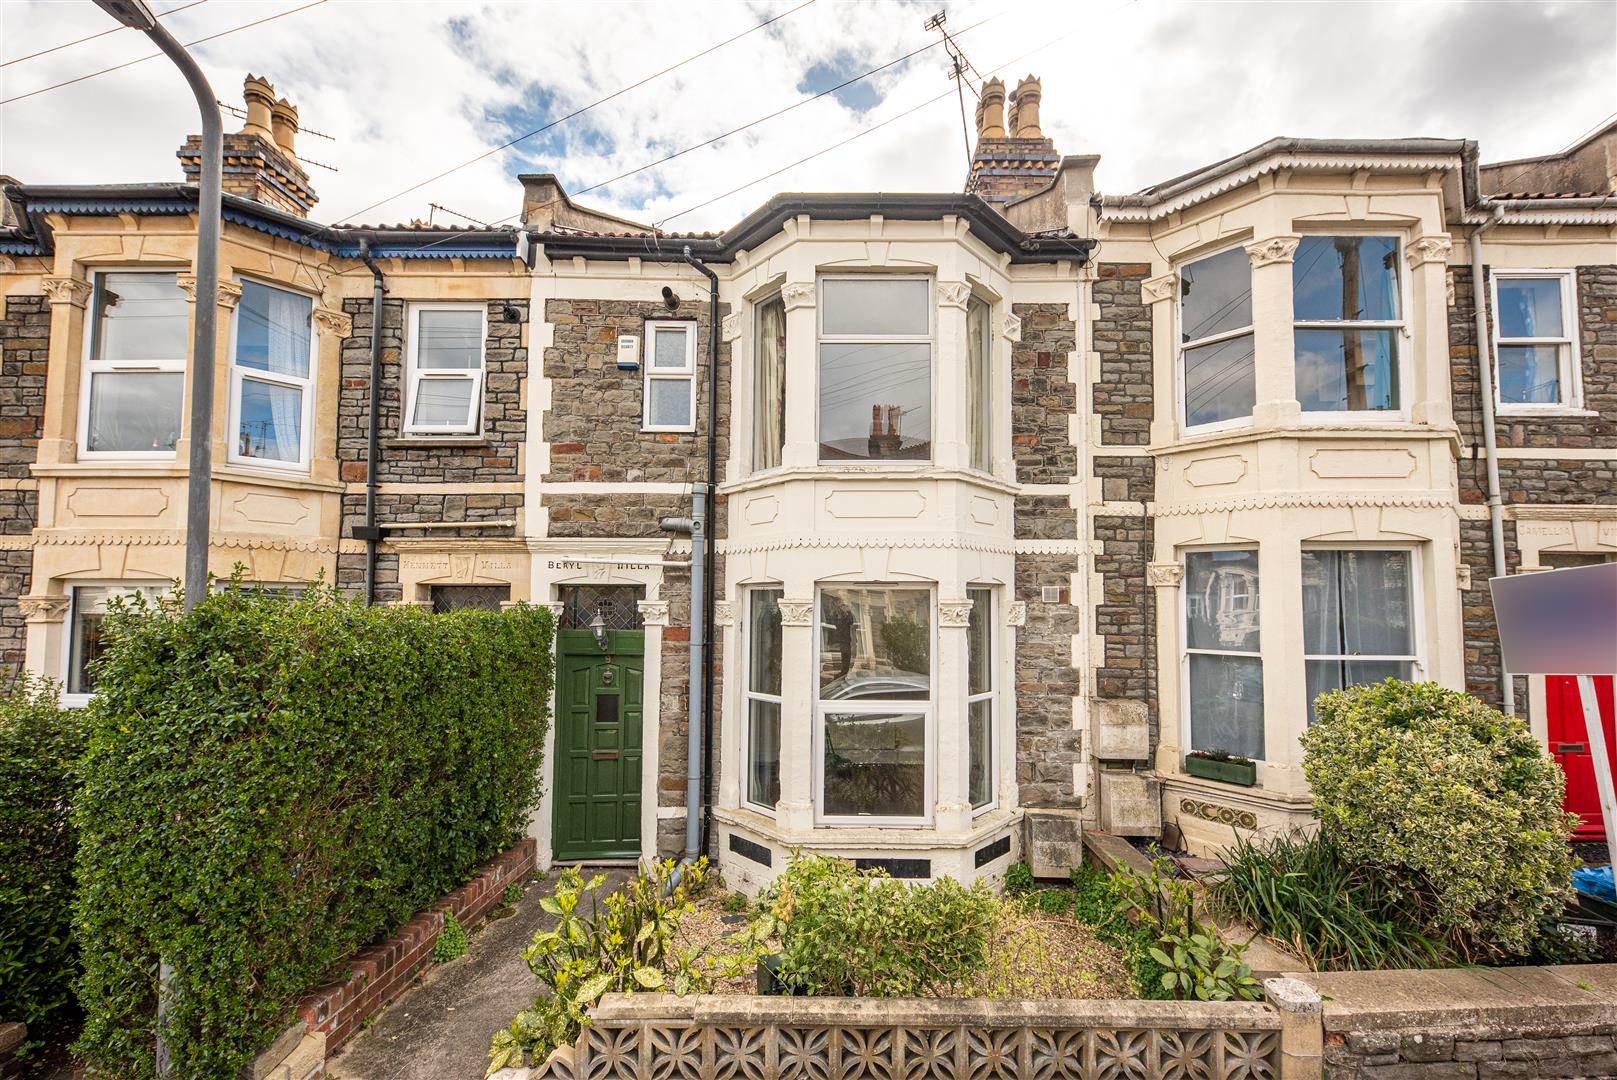 4 bed house for sale in Kennington Avenue, Bristol, BS7